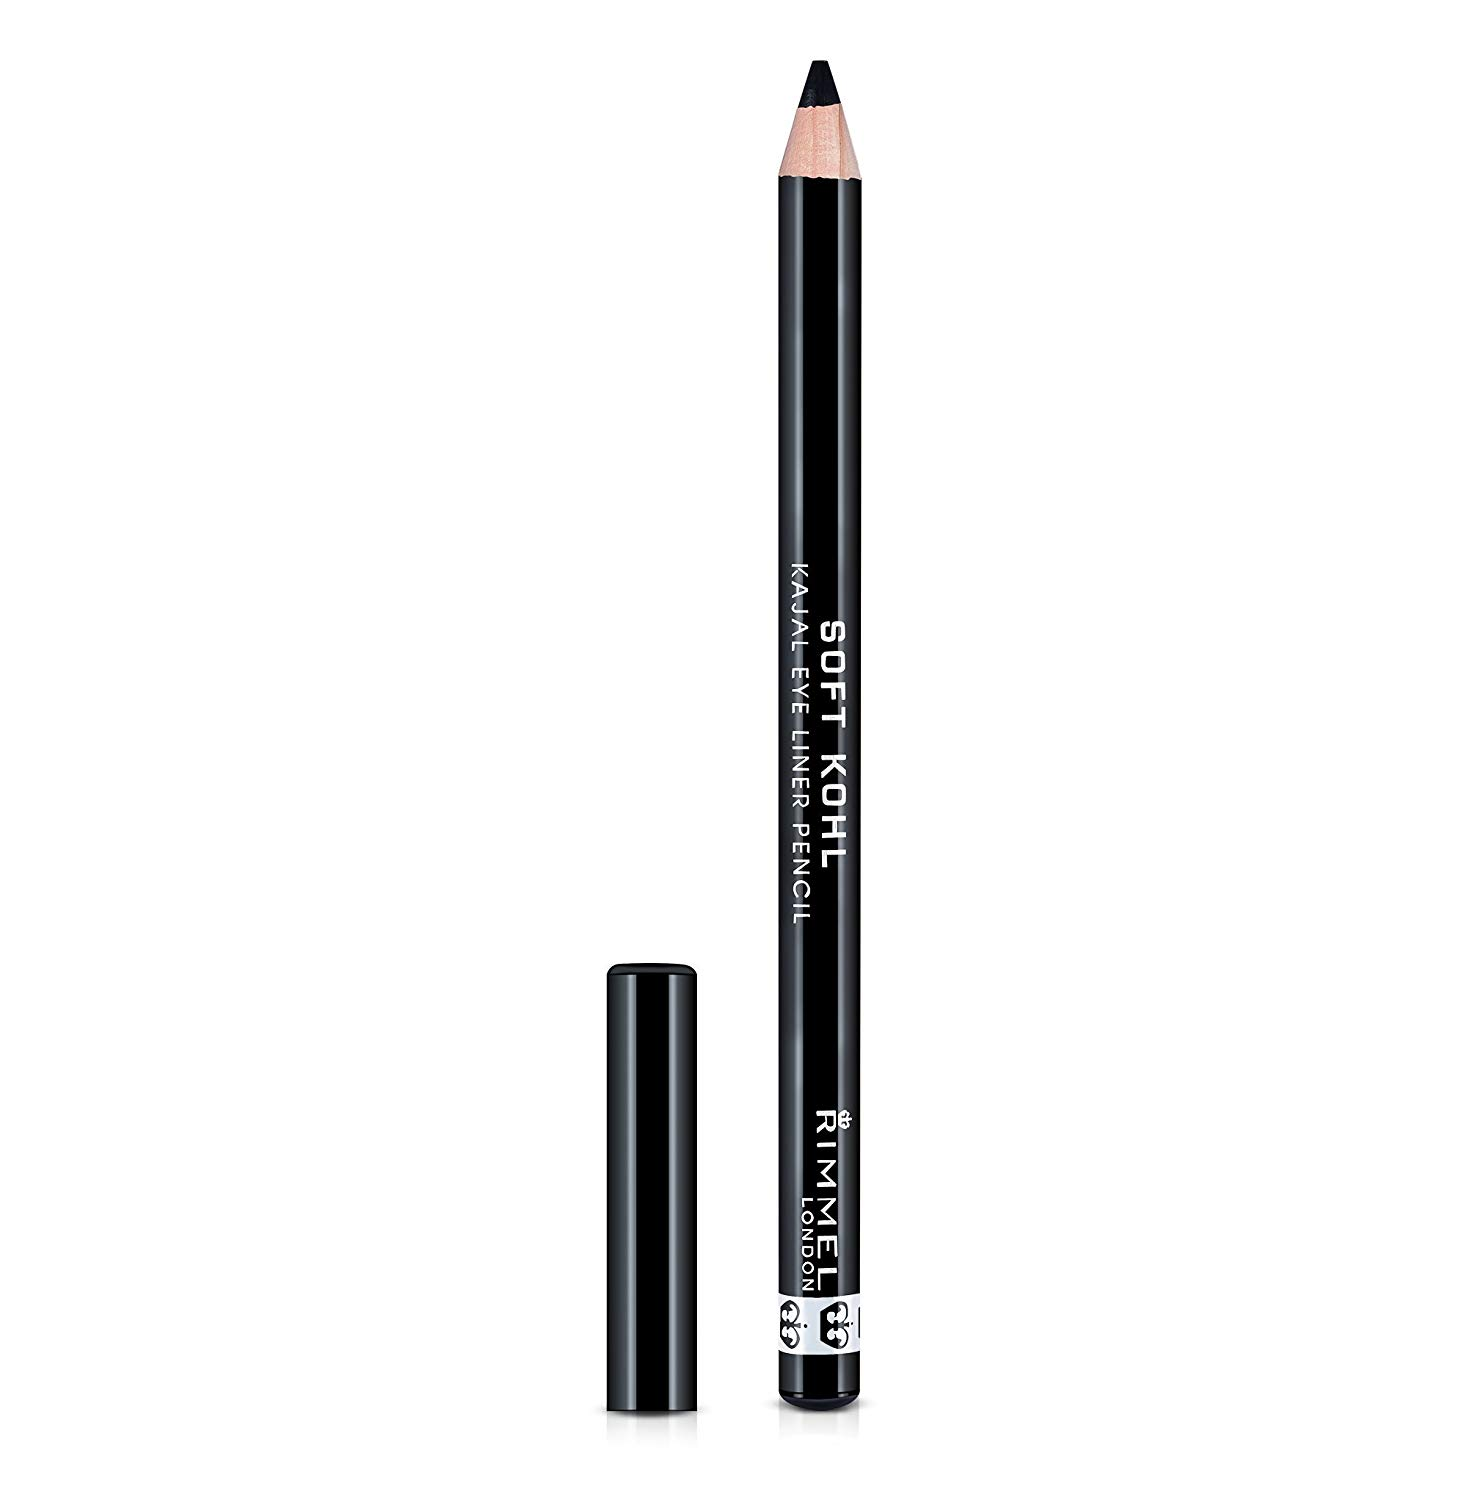 Rimmel Soft Kohl Kajal Professional Eyeliner Pencil, Jet Black